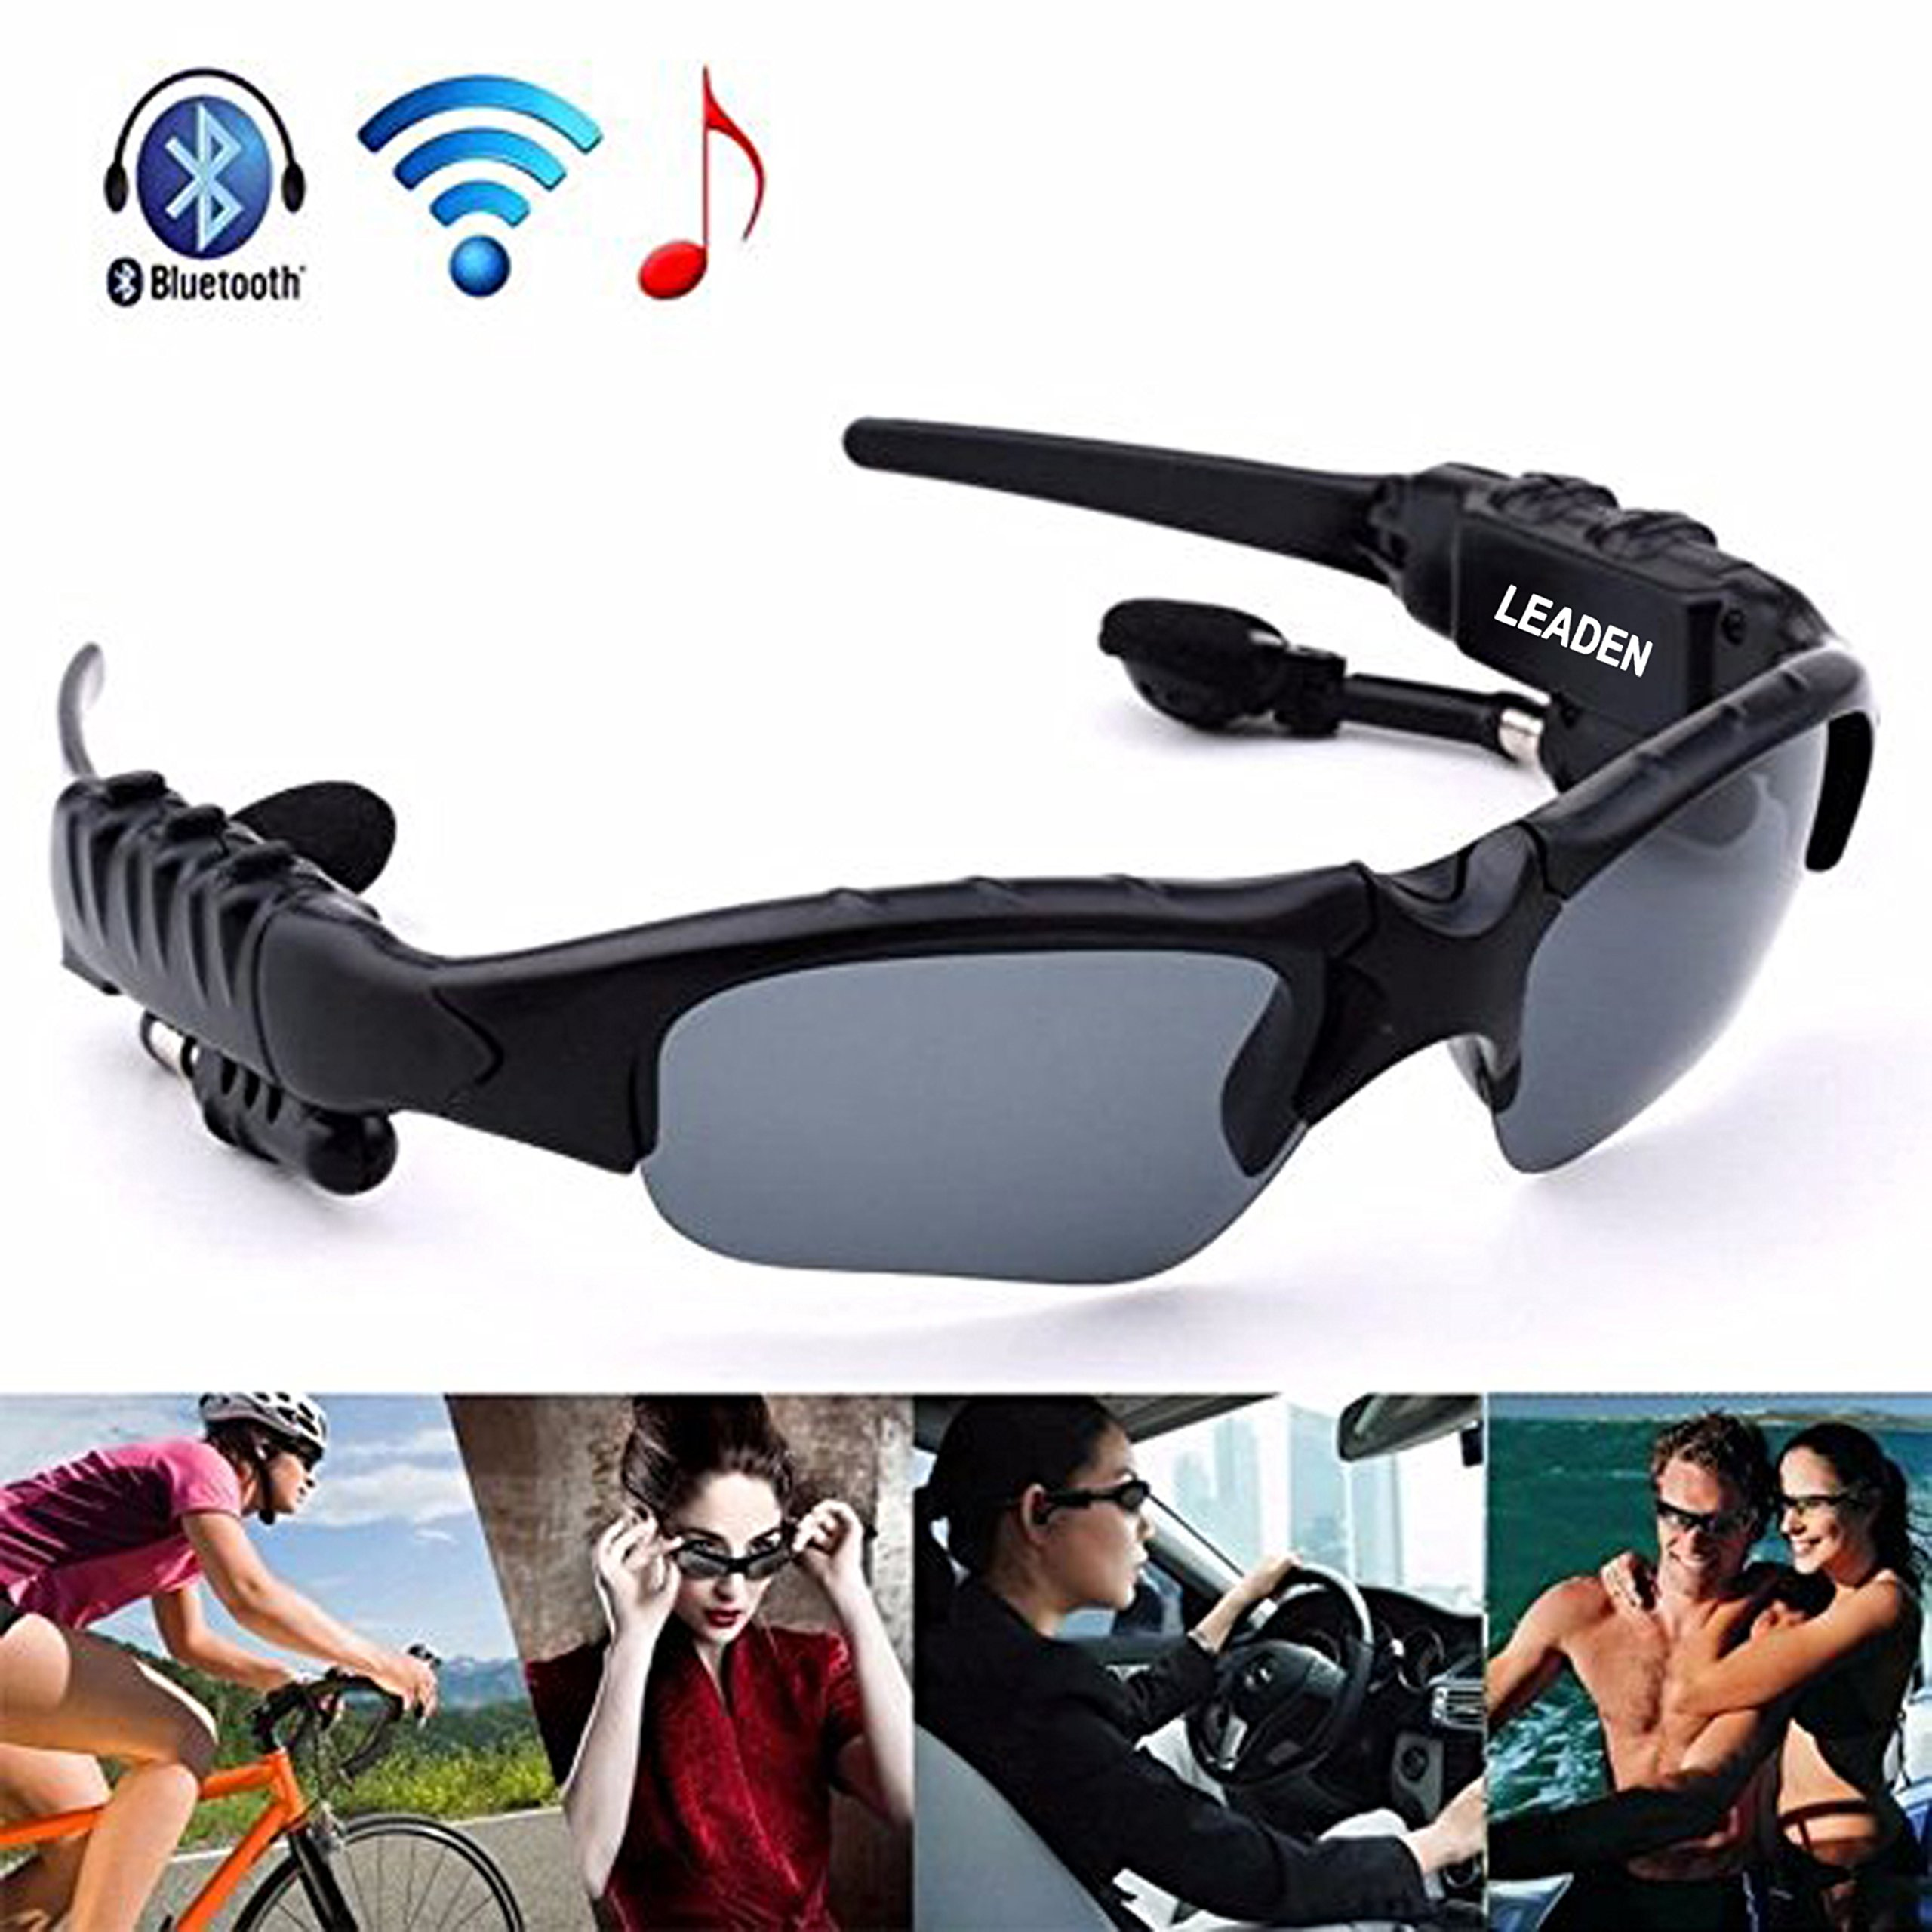 Leaden Wireless Bluetooth Headsets Polarized Lenses Sunglasses V4.1 Stereo Handfree Headphone for IPhone Samsung Most Smartphone or PC (black)